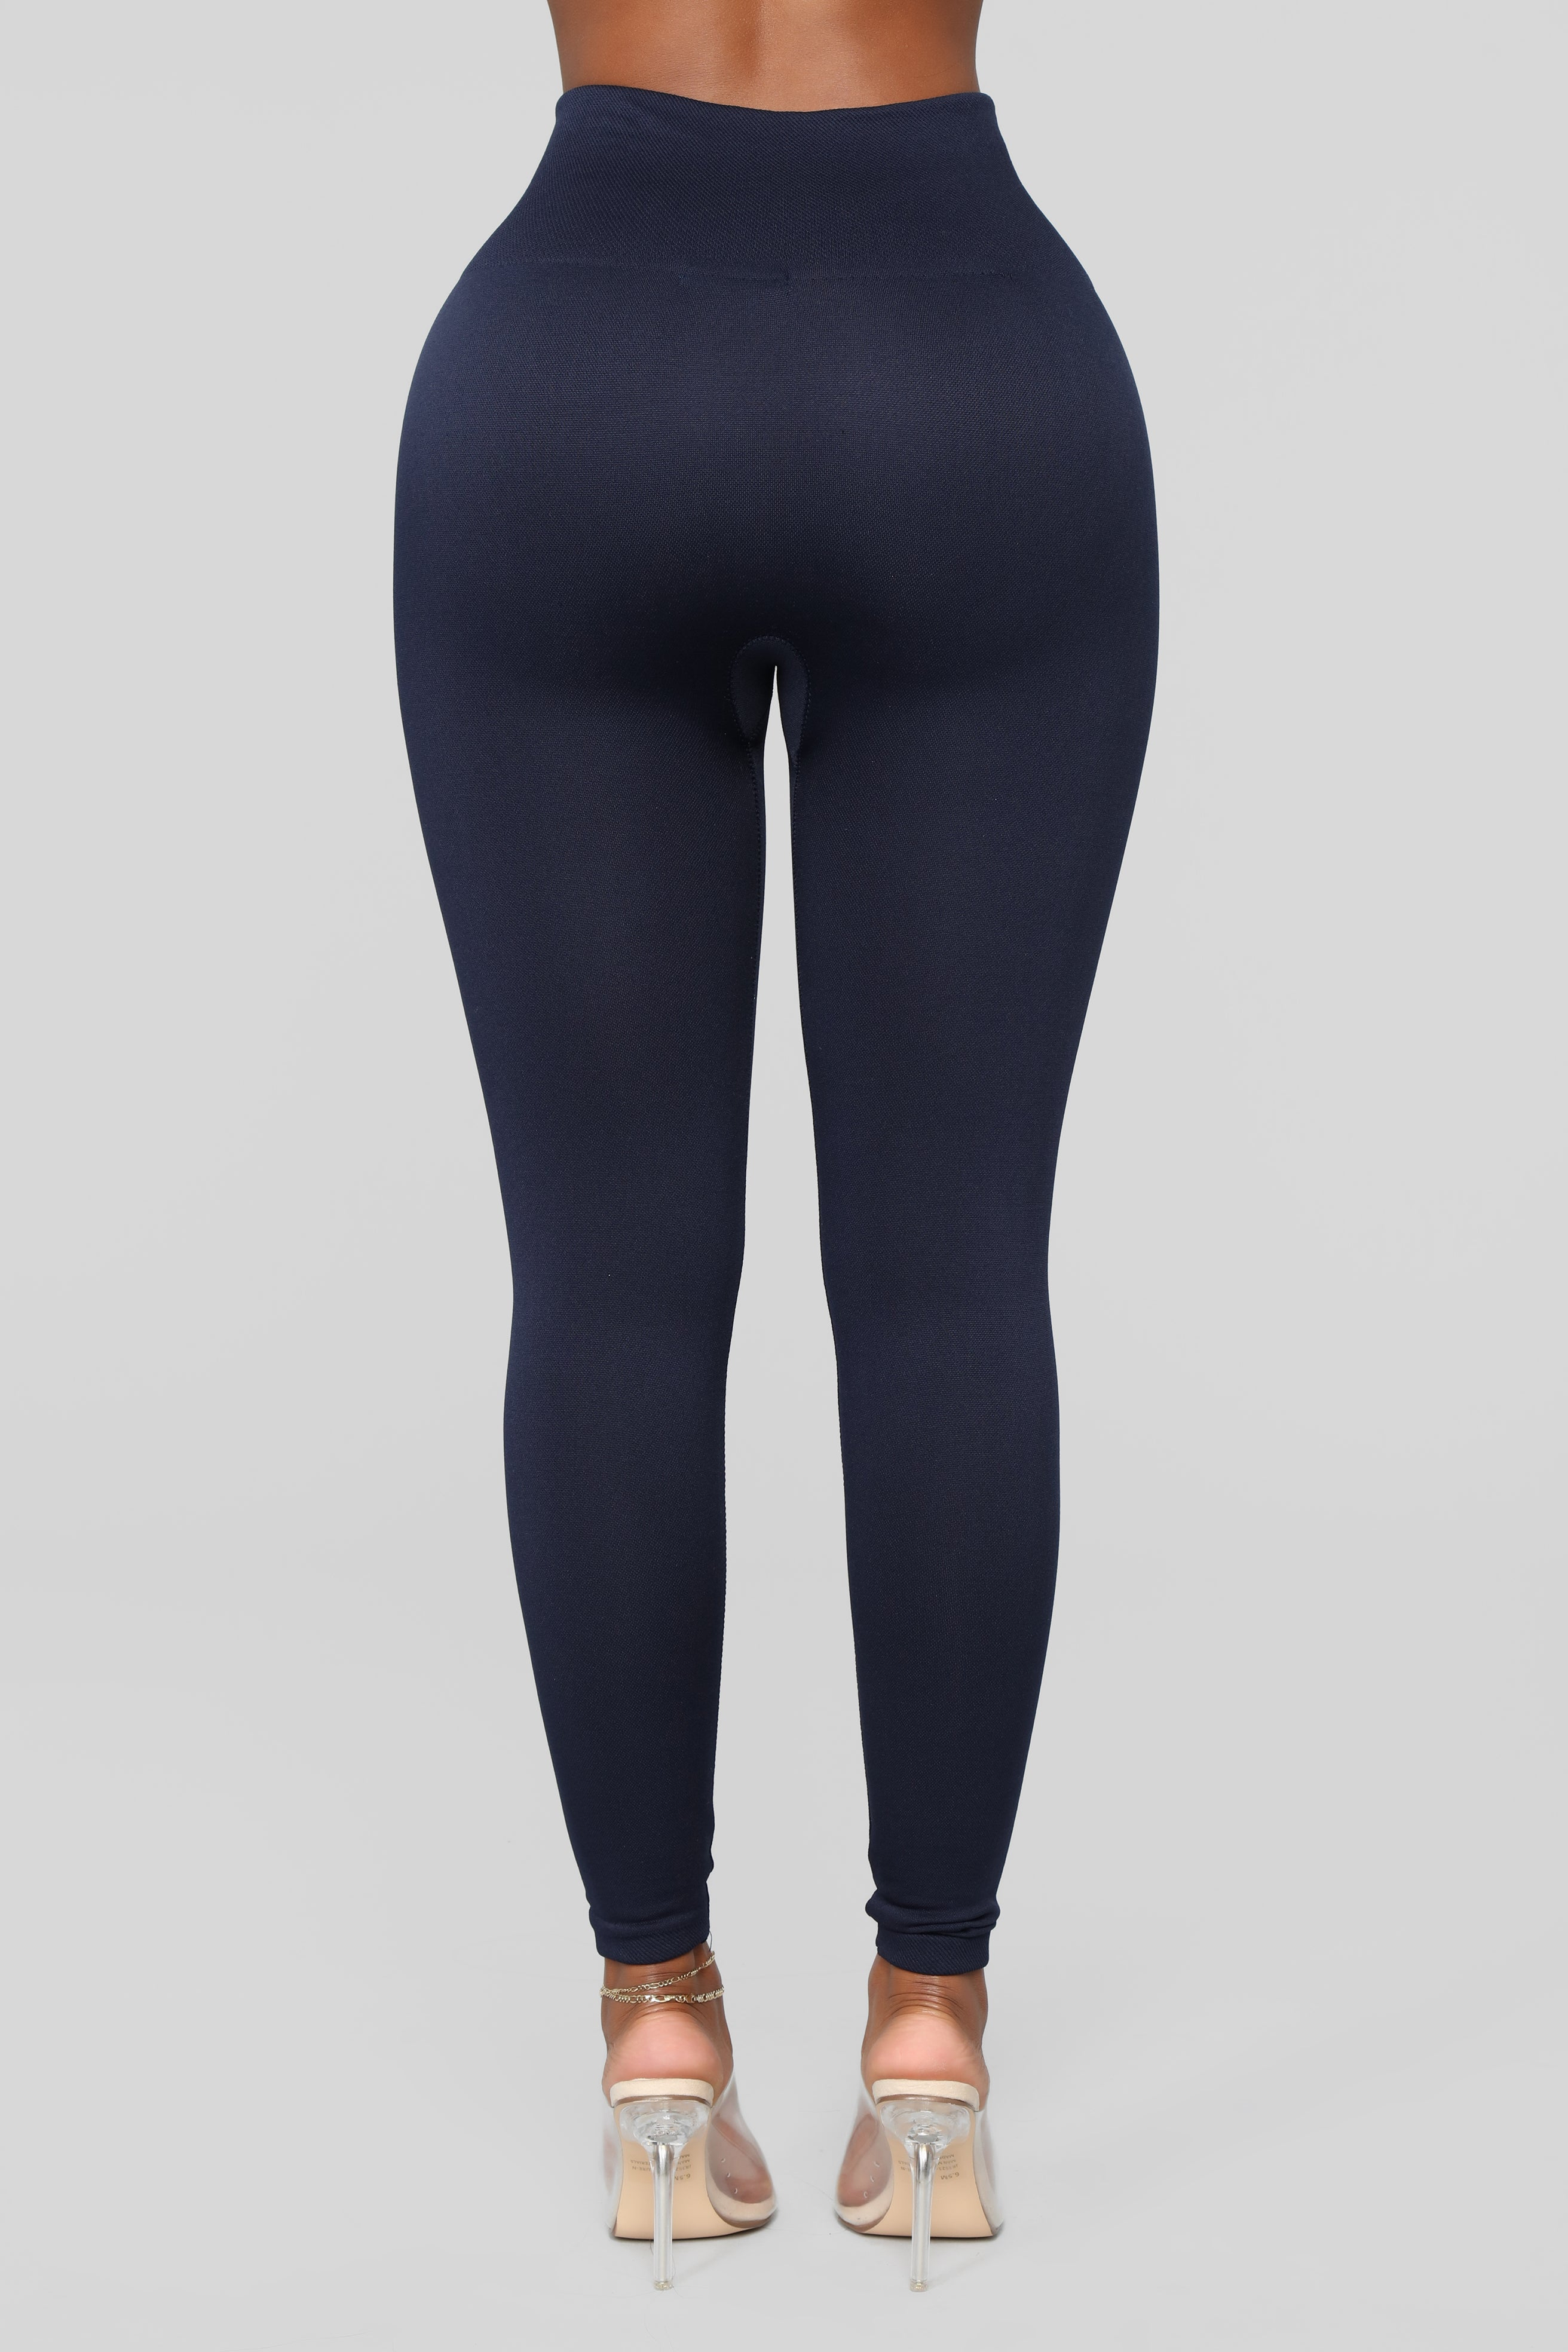 976d466462cc9 Warm As Can Be Fleece Lined Leggings - Navy